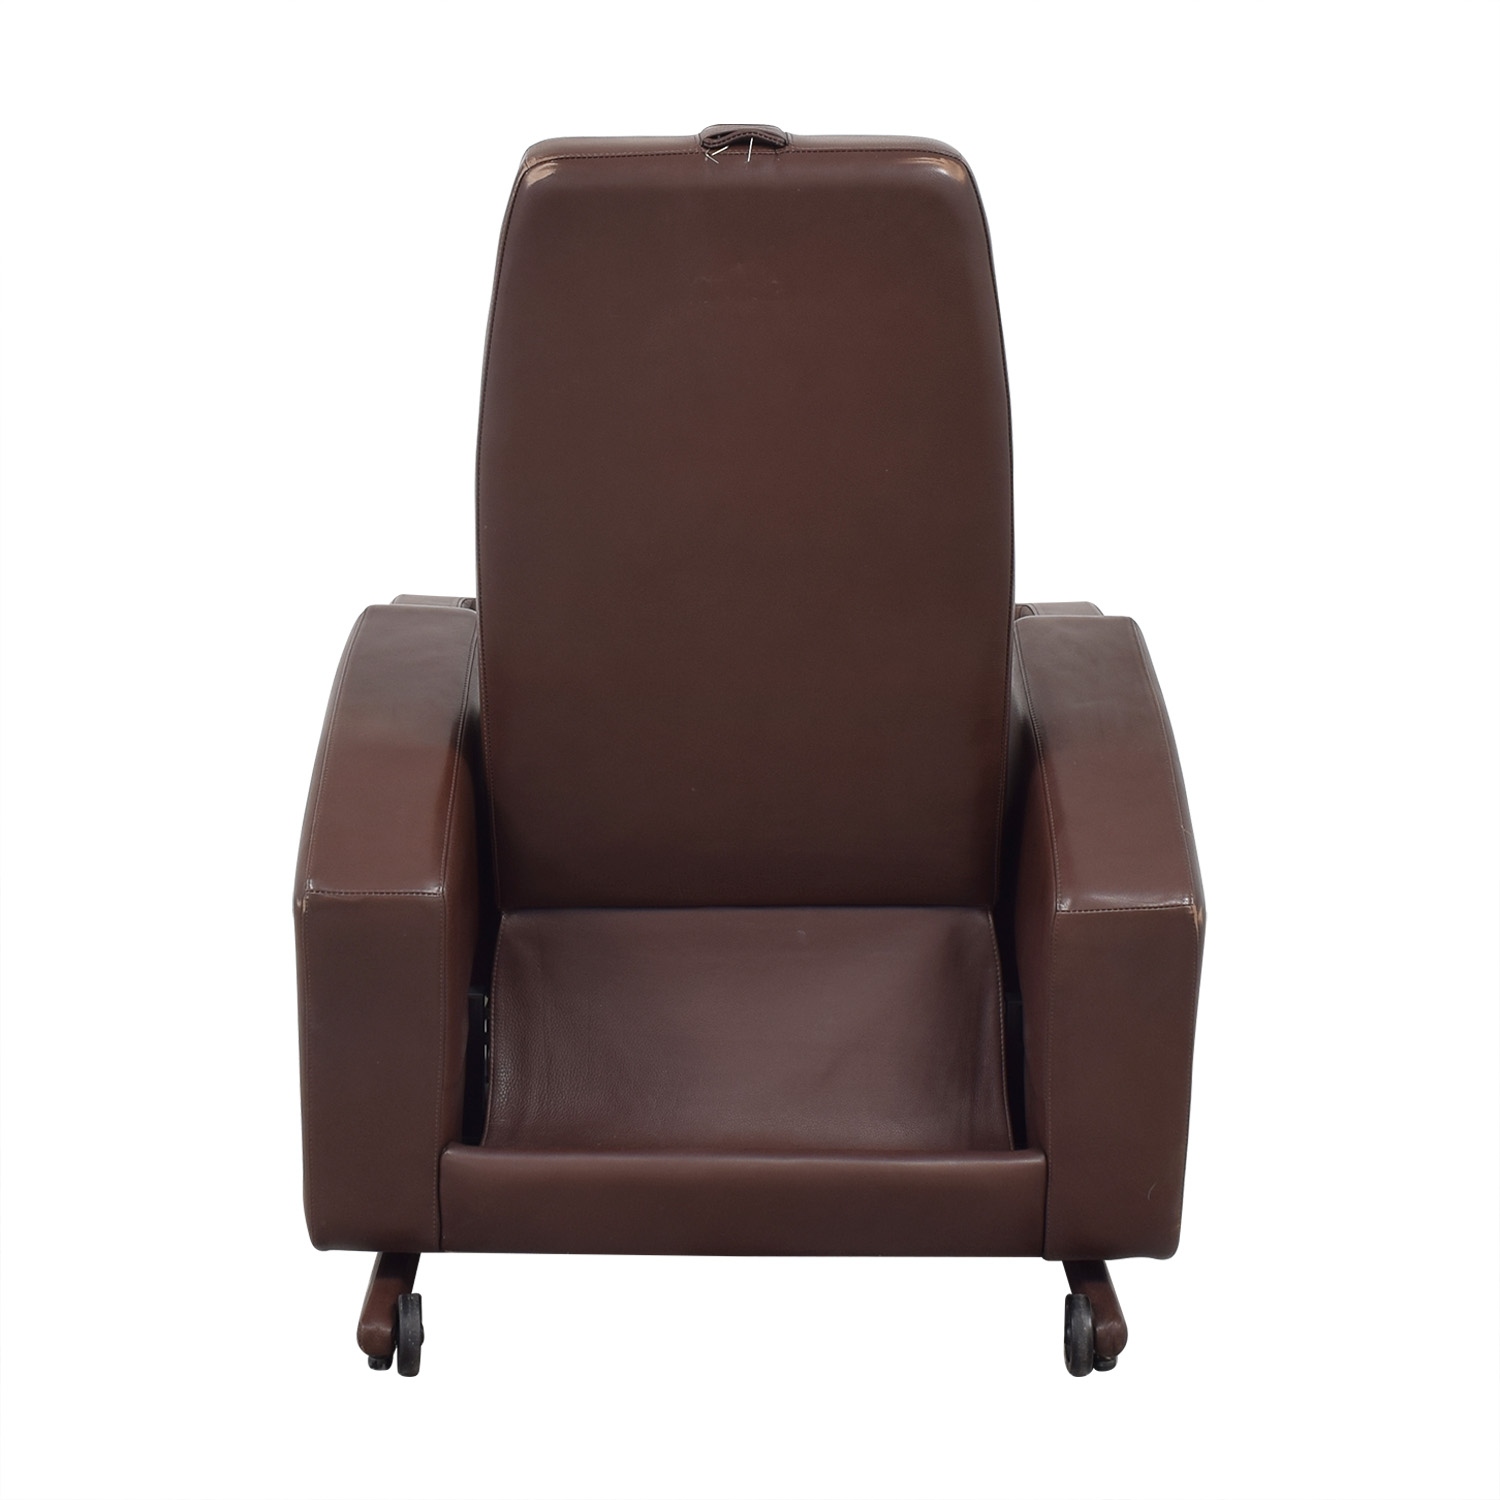 Relax the Back Zero Gravity Leather Rocking Recliner / Recliners